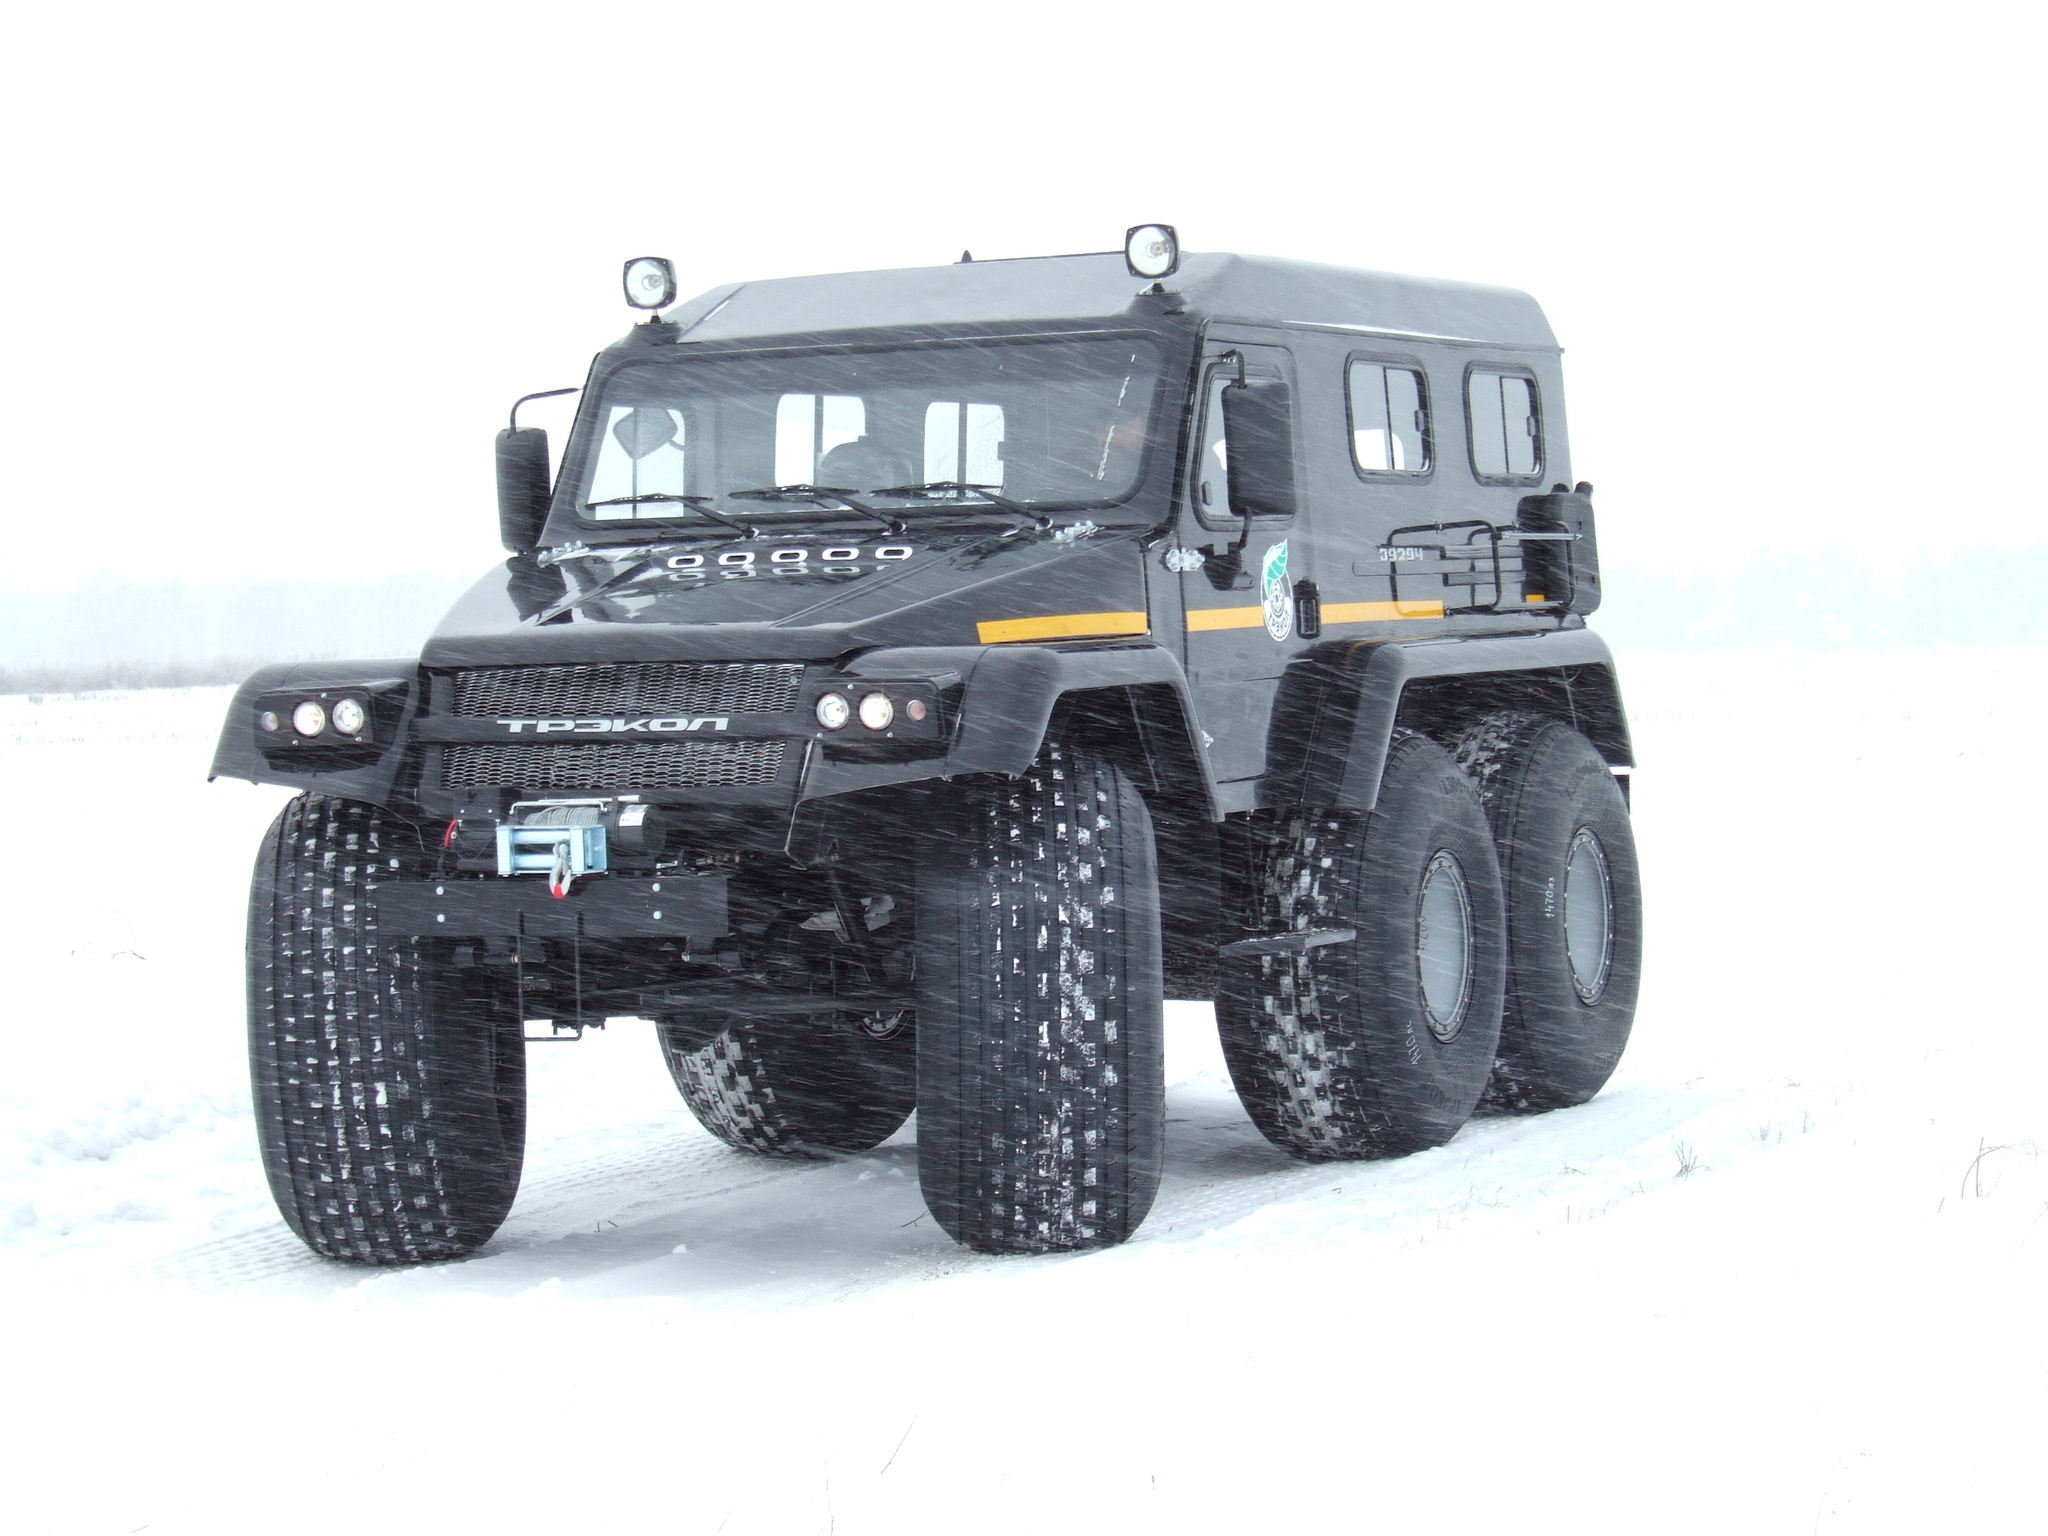 Trecol 6x6 amphibious 39294 all-terrain vehicle